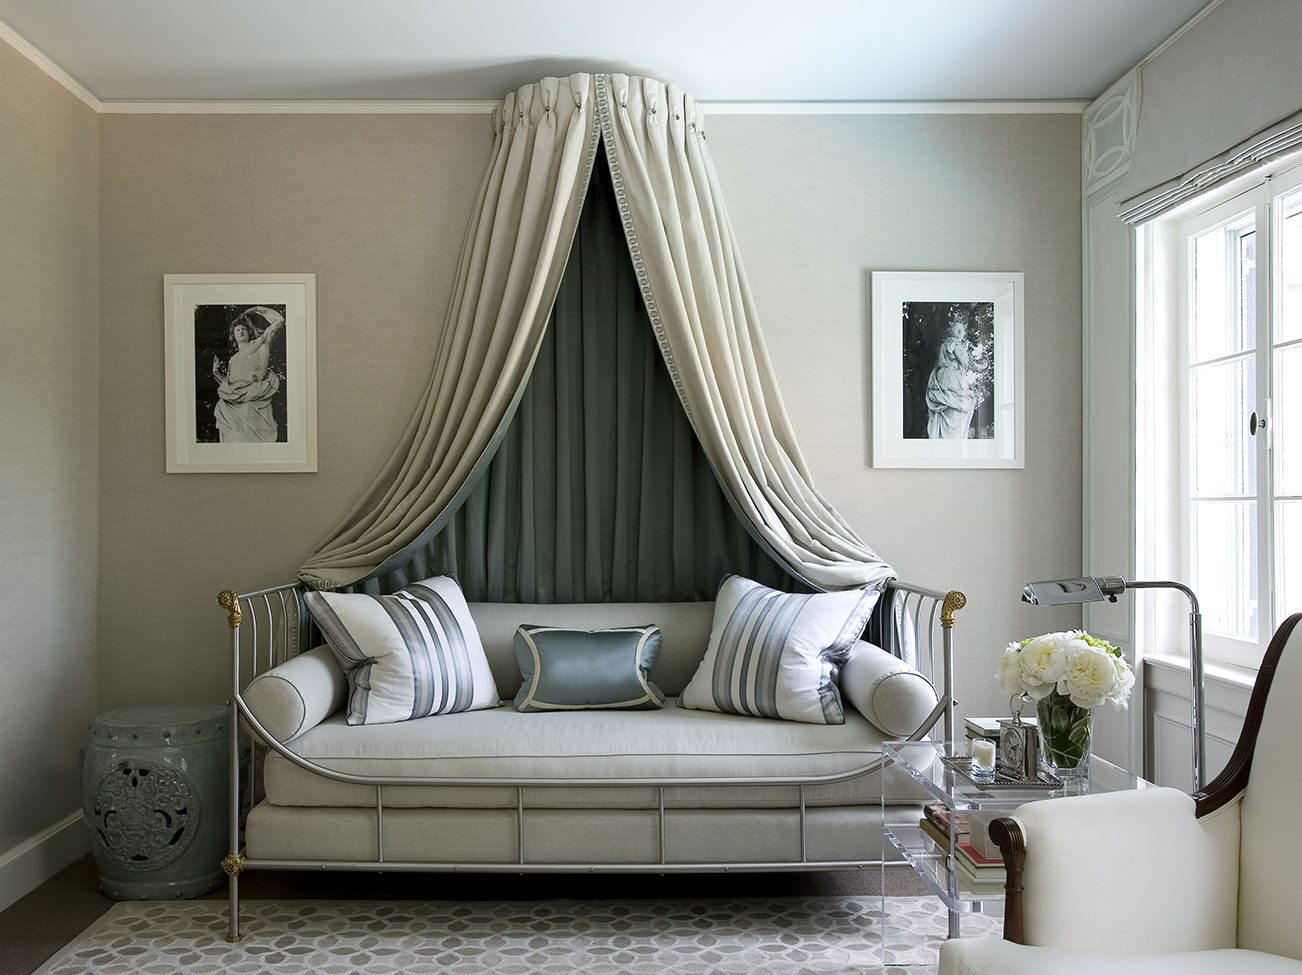 Sitting room in neutral tones with sky blue-painted ceiling, cushioned day bed with draped canopy, and striped pillows.